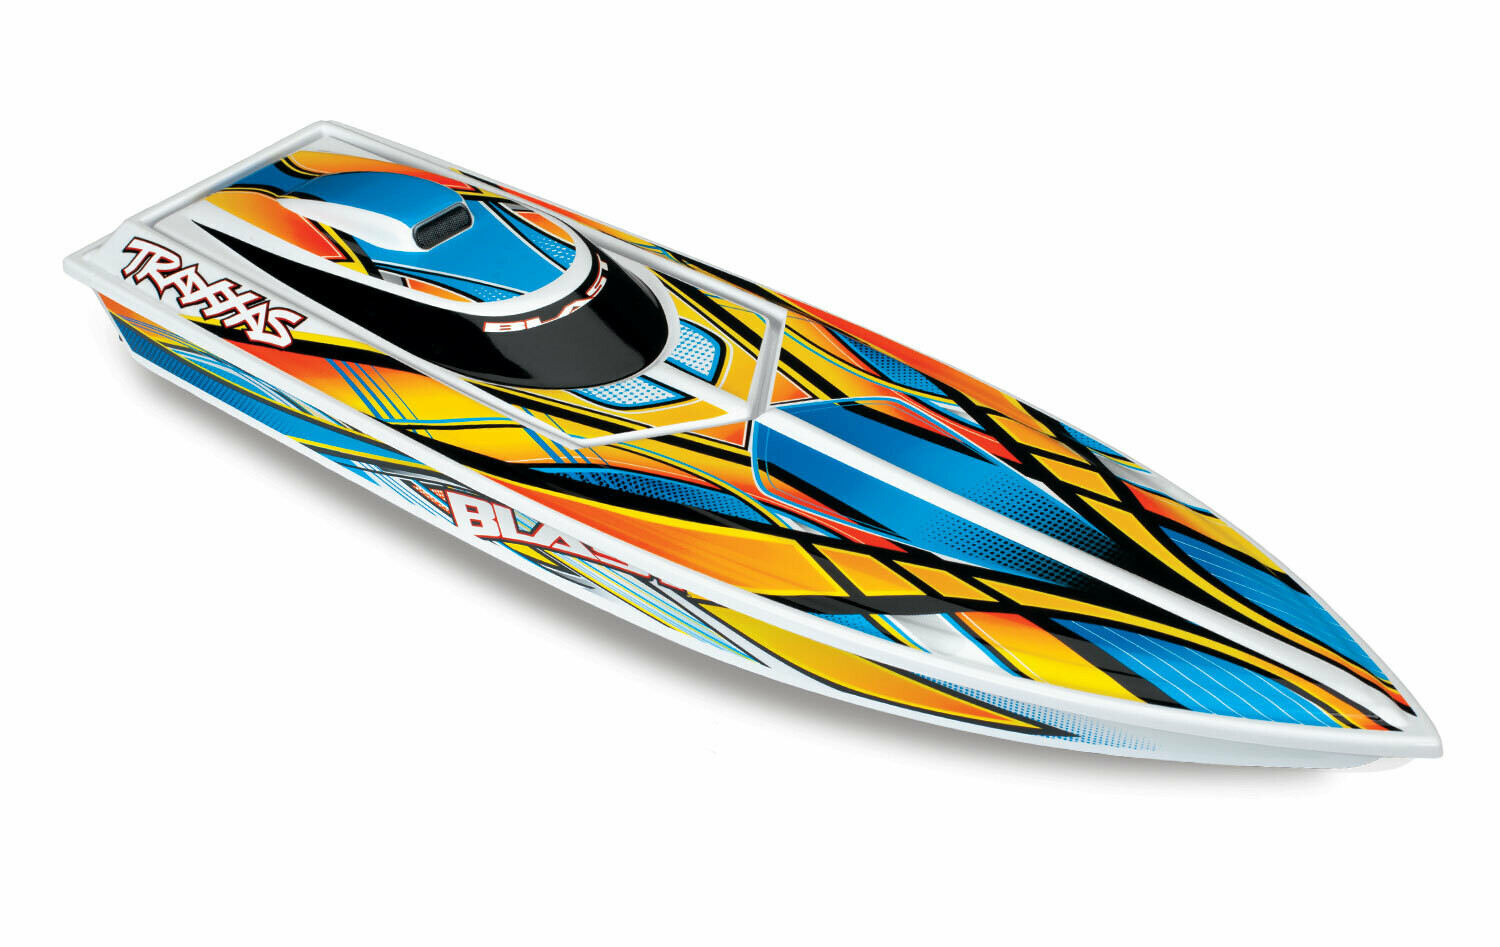 Traxxas Blast™ Race Boat (TQ/7.2V/DC Charger) + Includes Traxxas AC To DC Power Supply 40W, For UK Wall Charging